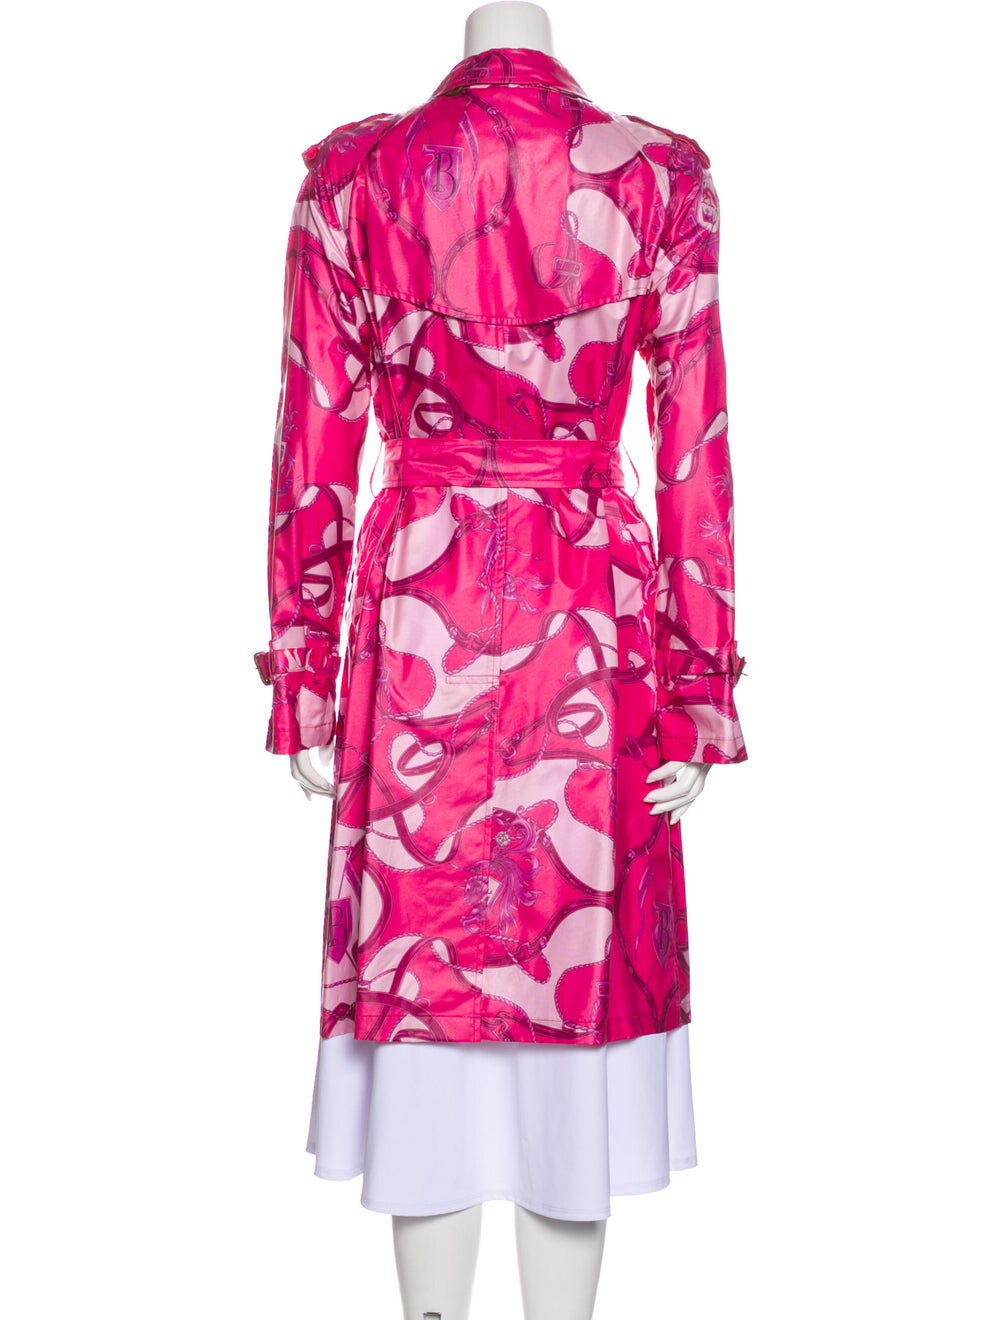 Burberry Printed Trench Coat Pink - image 3